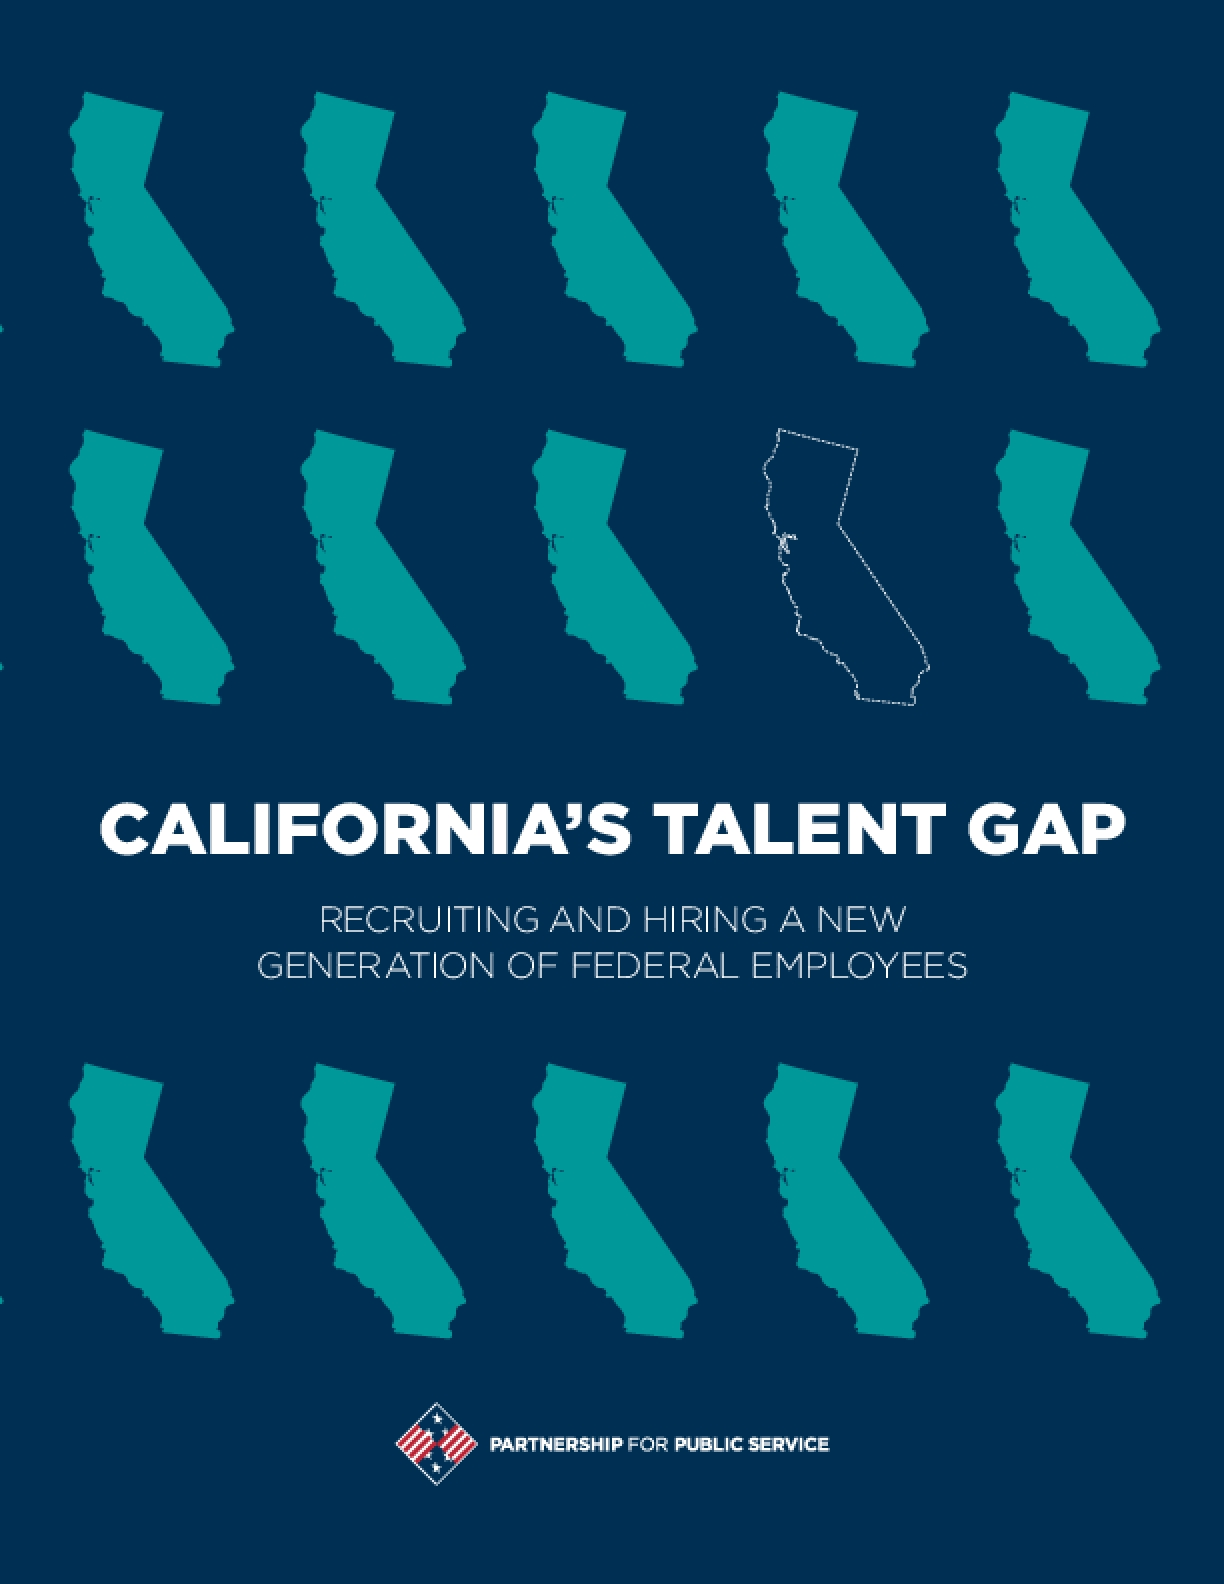 California's Talent Gap: Recruiting and Hiring a New Generation of Federal Employees